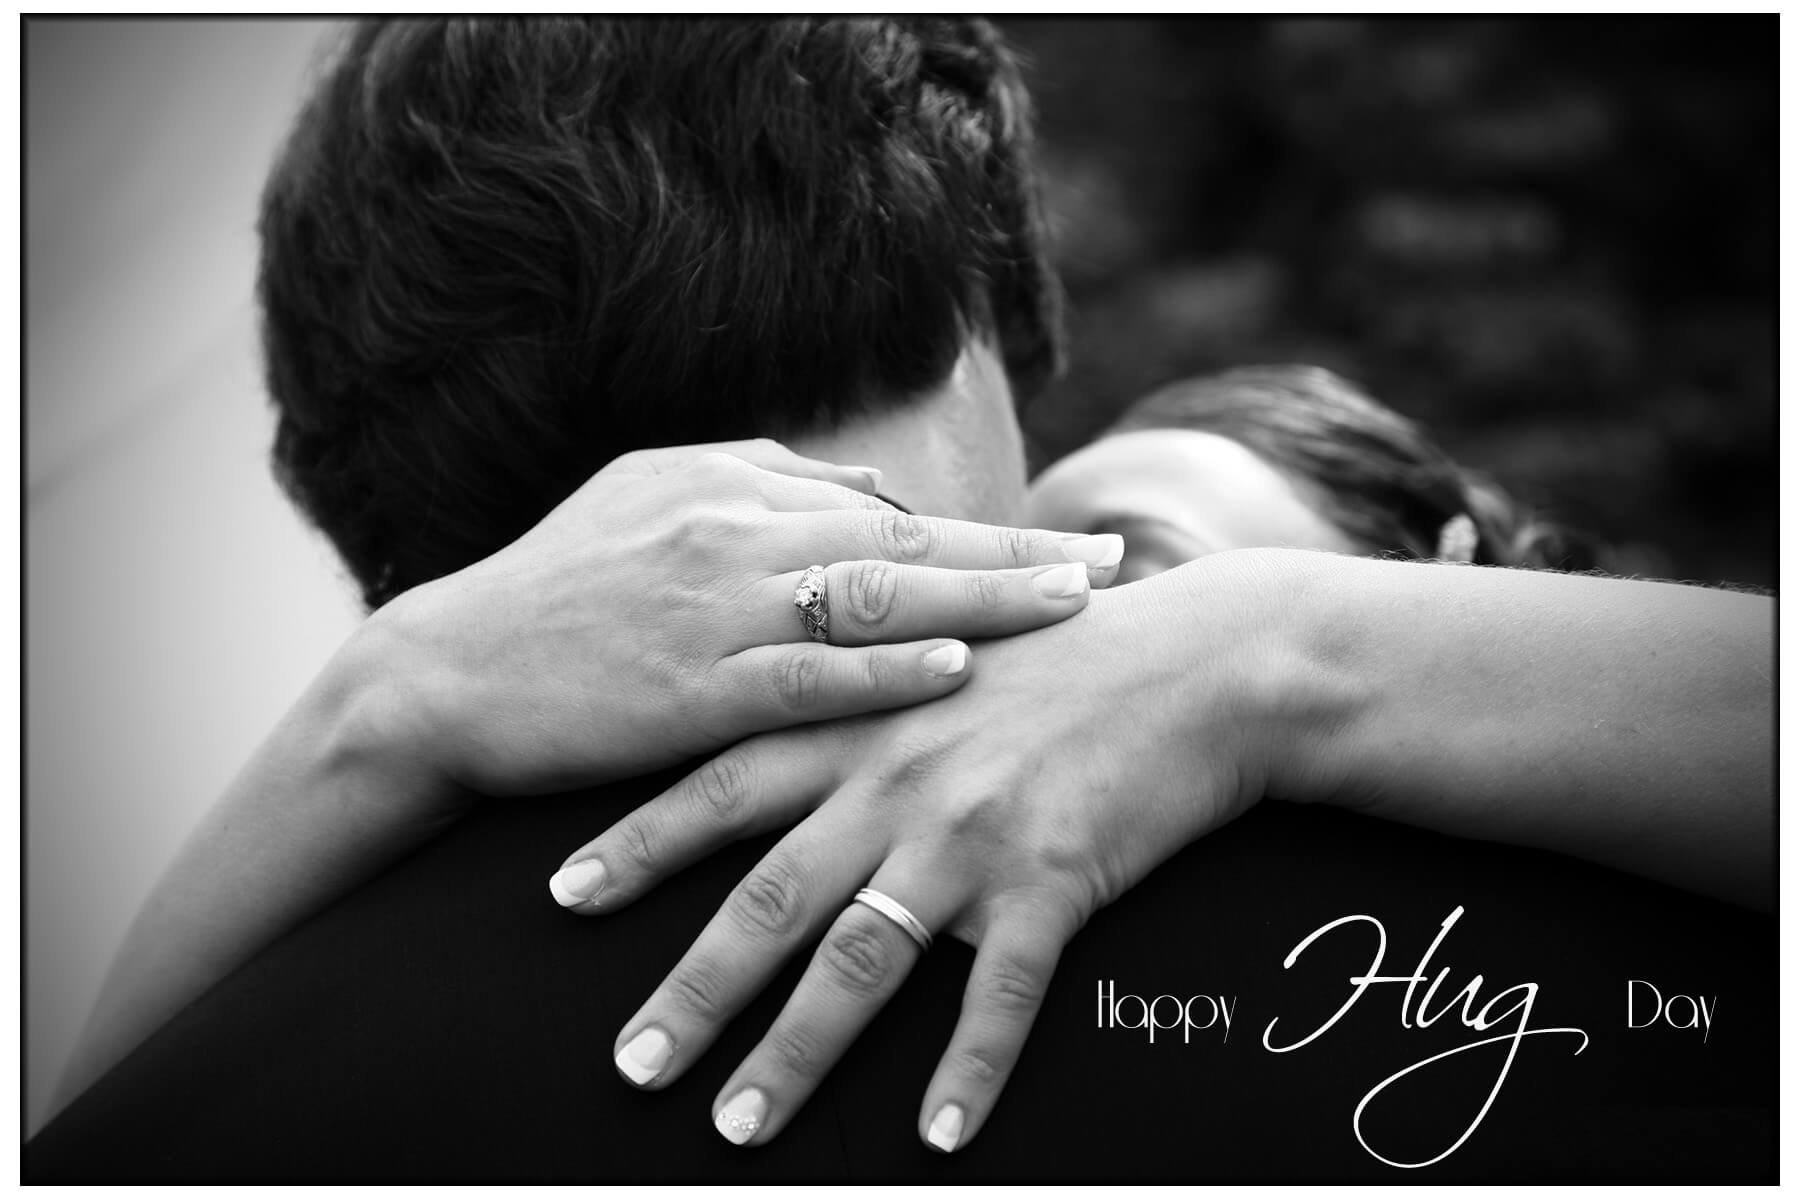 happy hug day wishes love romantic couples photo graphic hd wallpaper